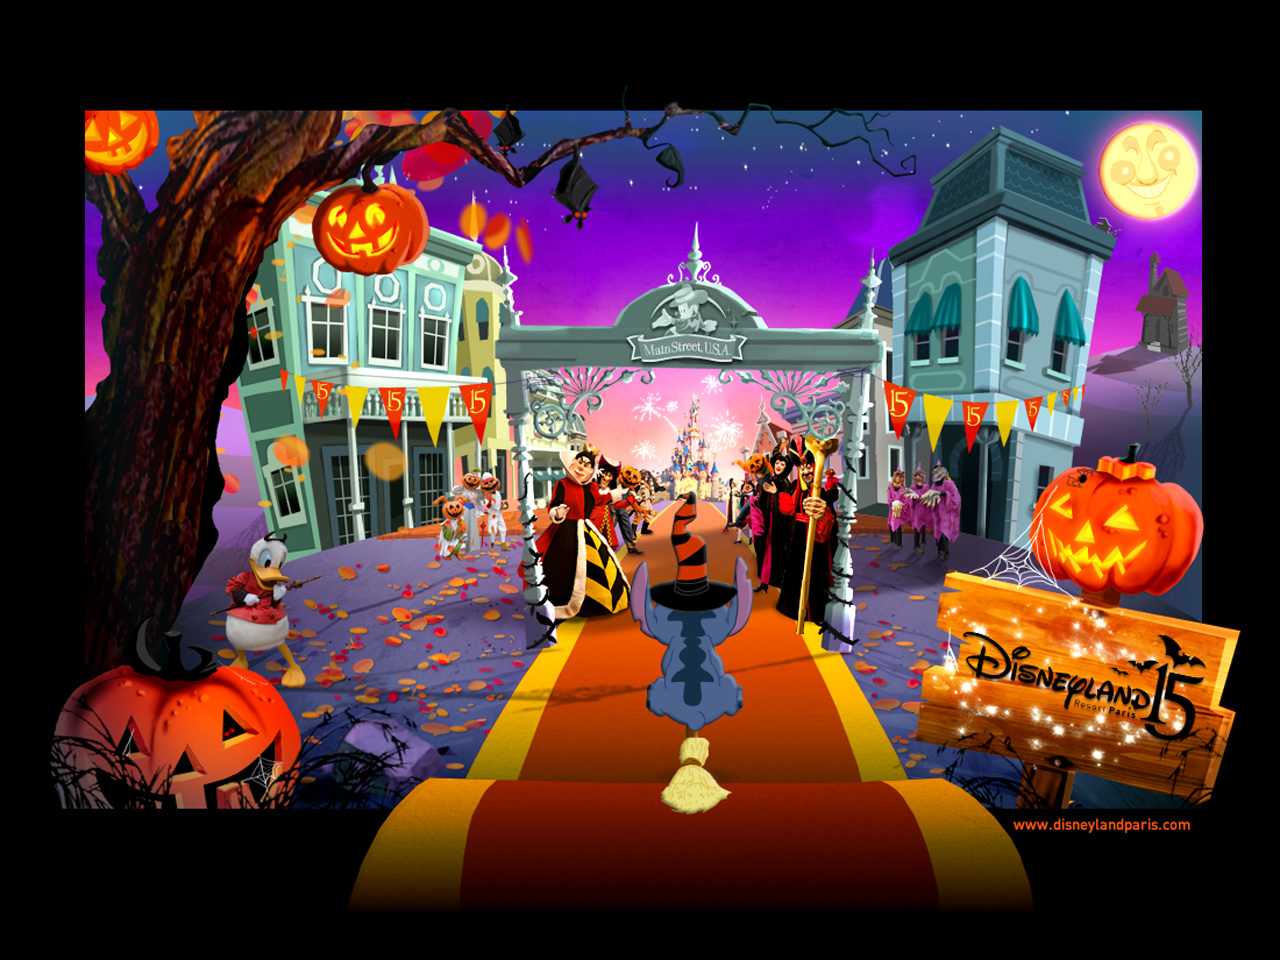 Halloween 2012 wallpaper for Disneys fan Wallpaper for holiday 1280x960